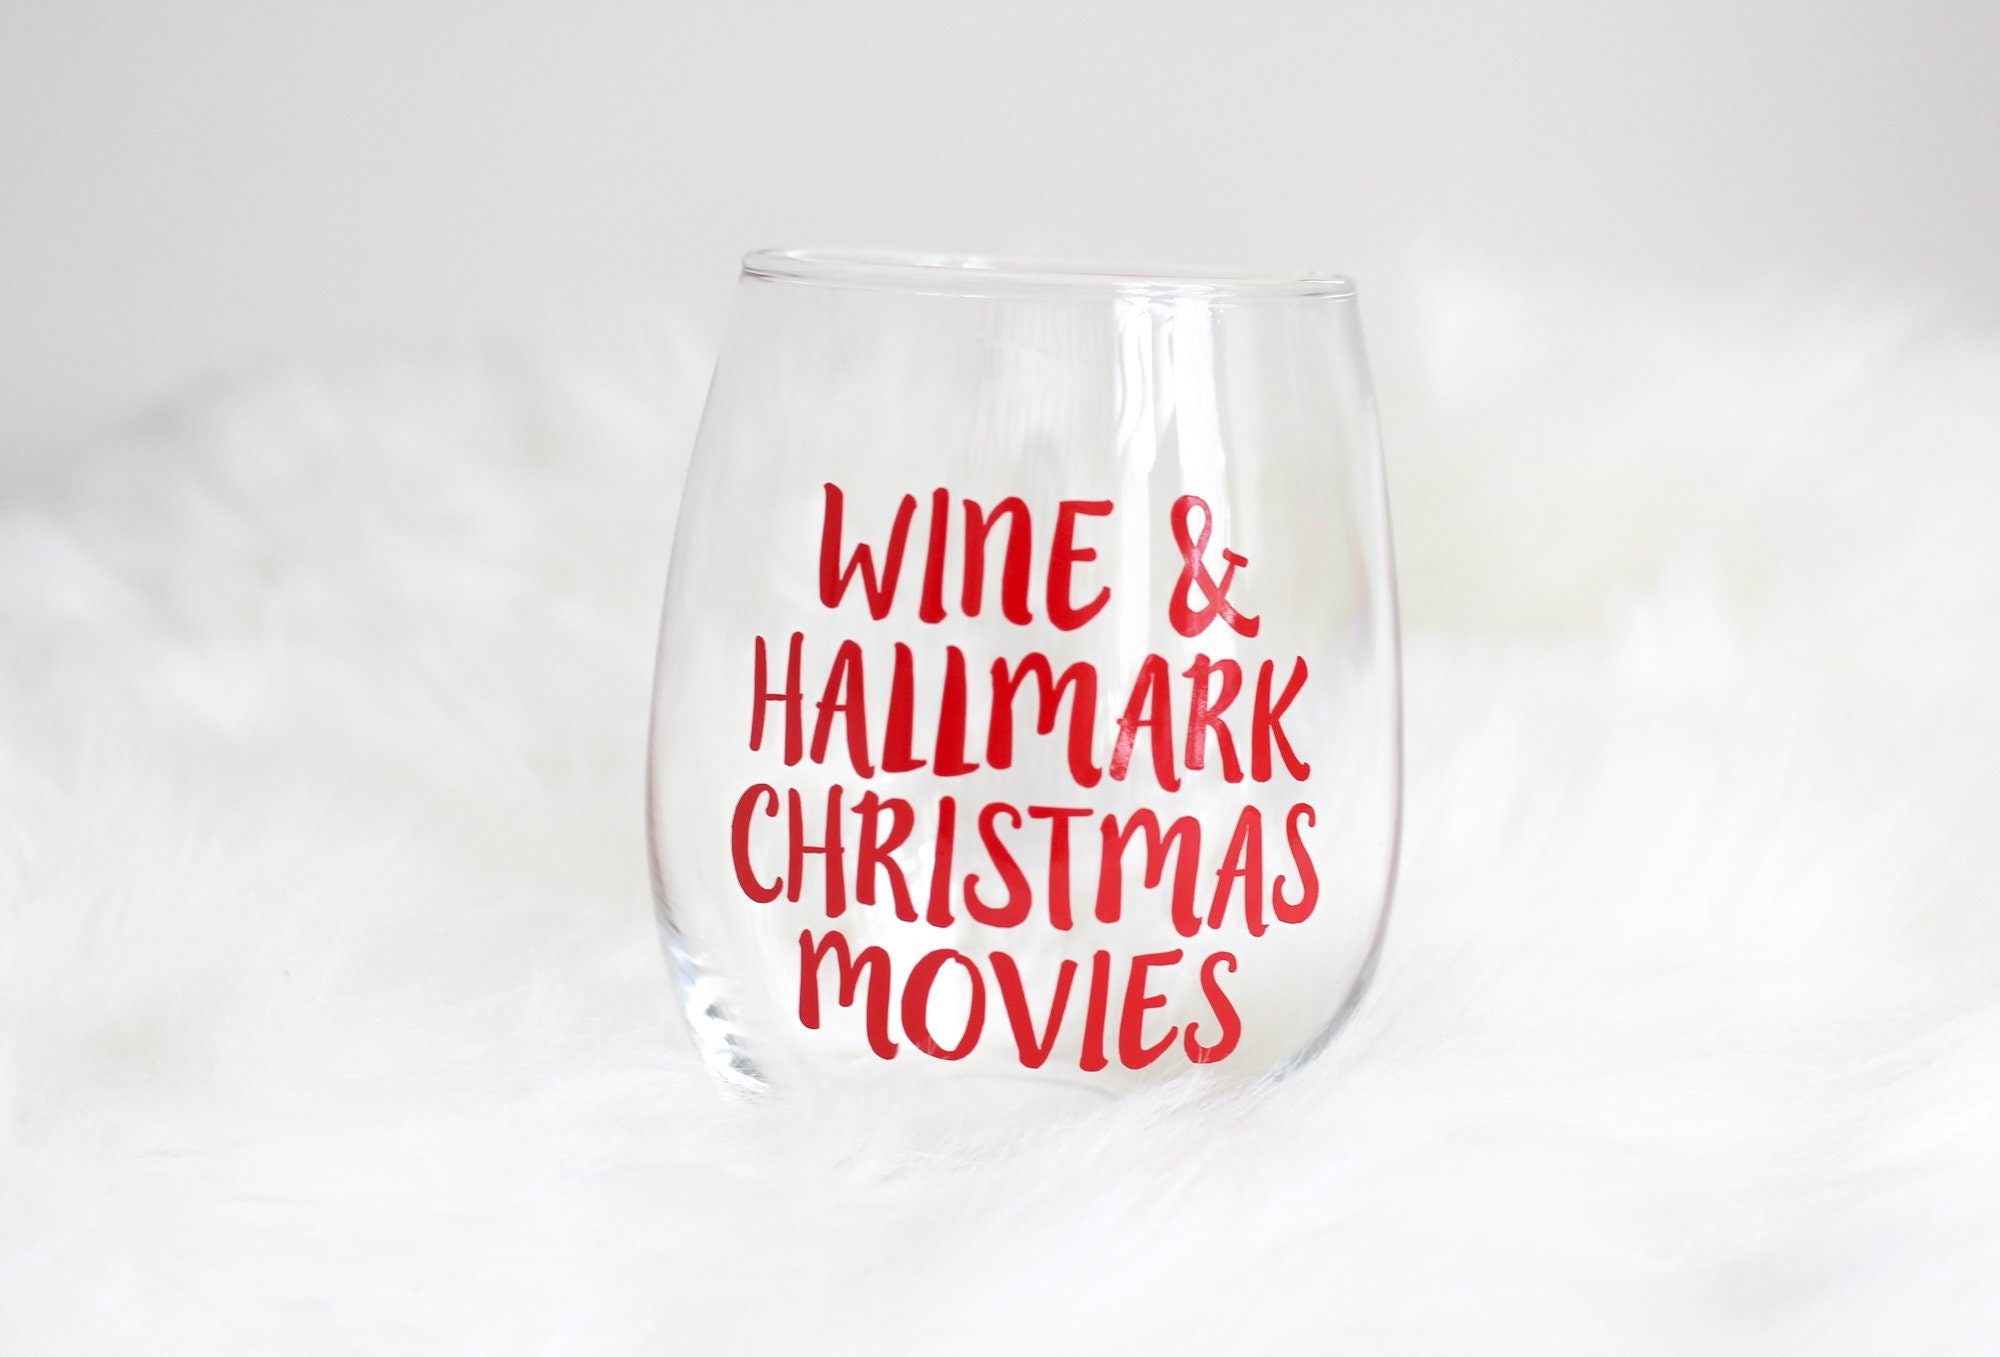 Hallmark Christmas Movies and Wine Glass Hallmark Gifts | Etsy